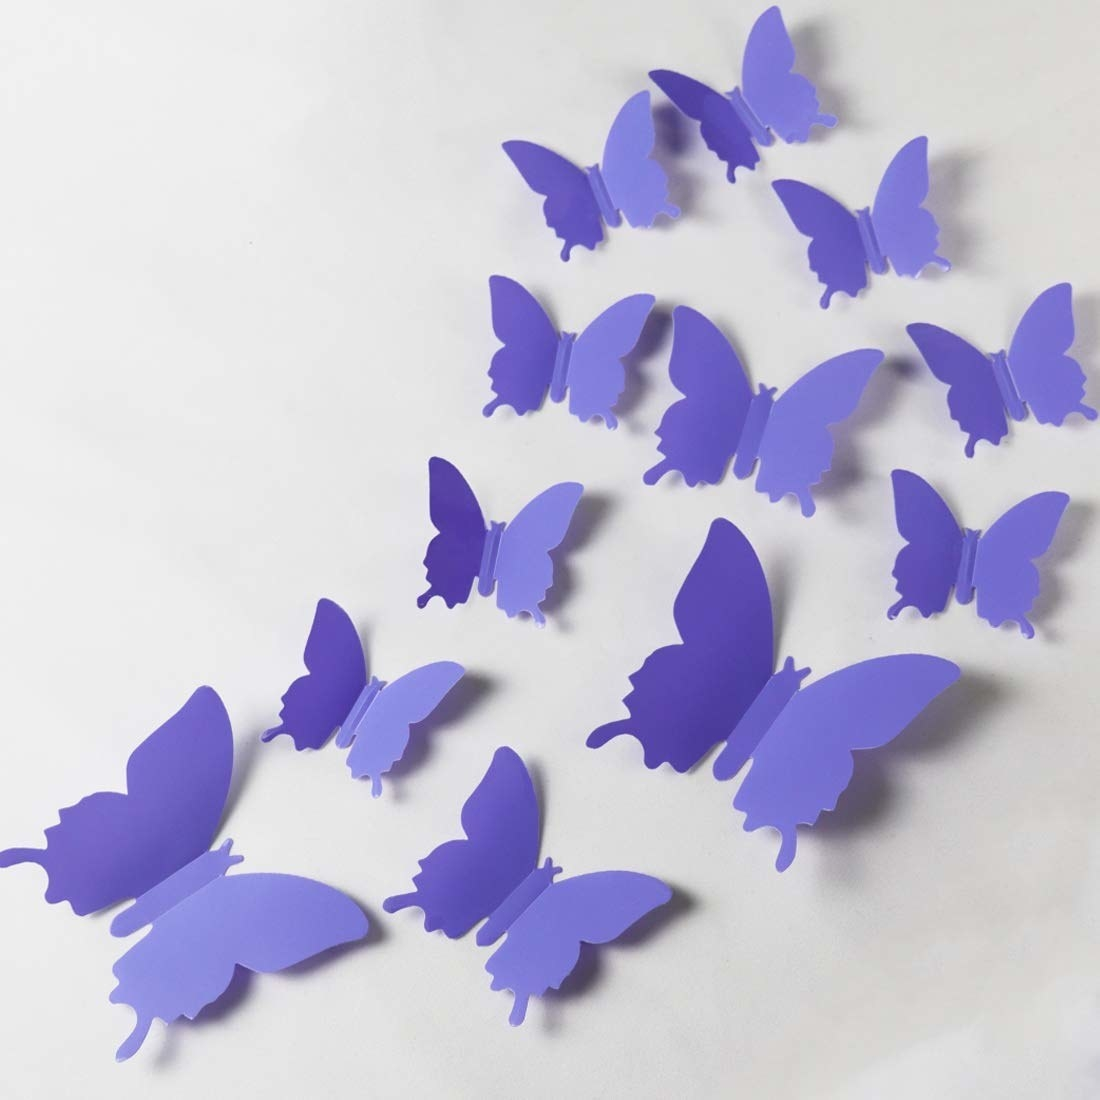 The butterfly decals in purple arranged on a wall